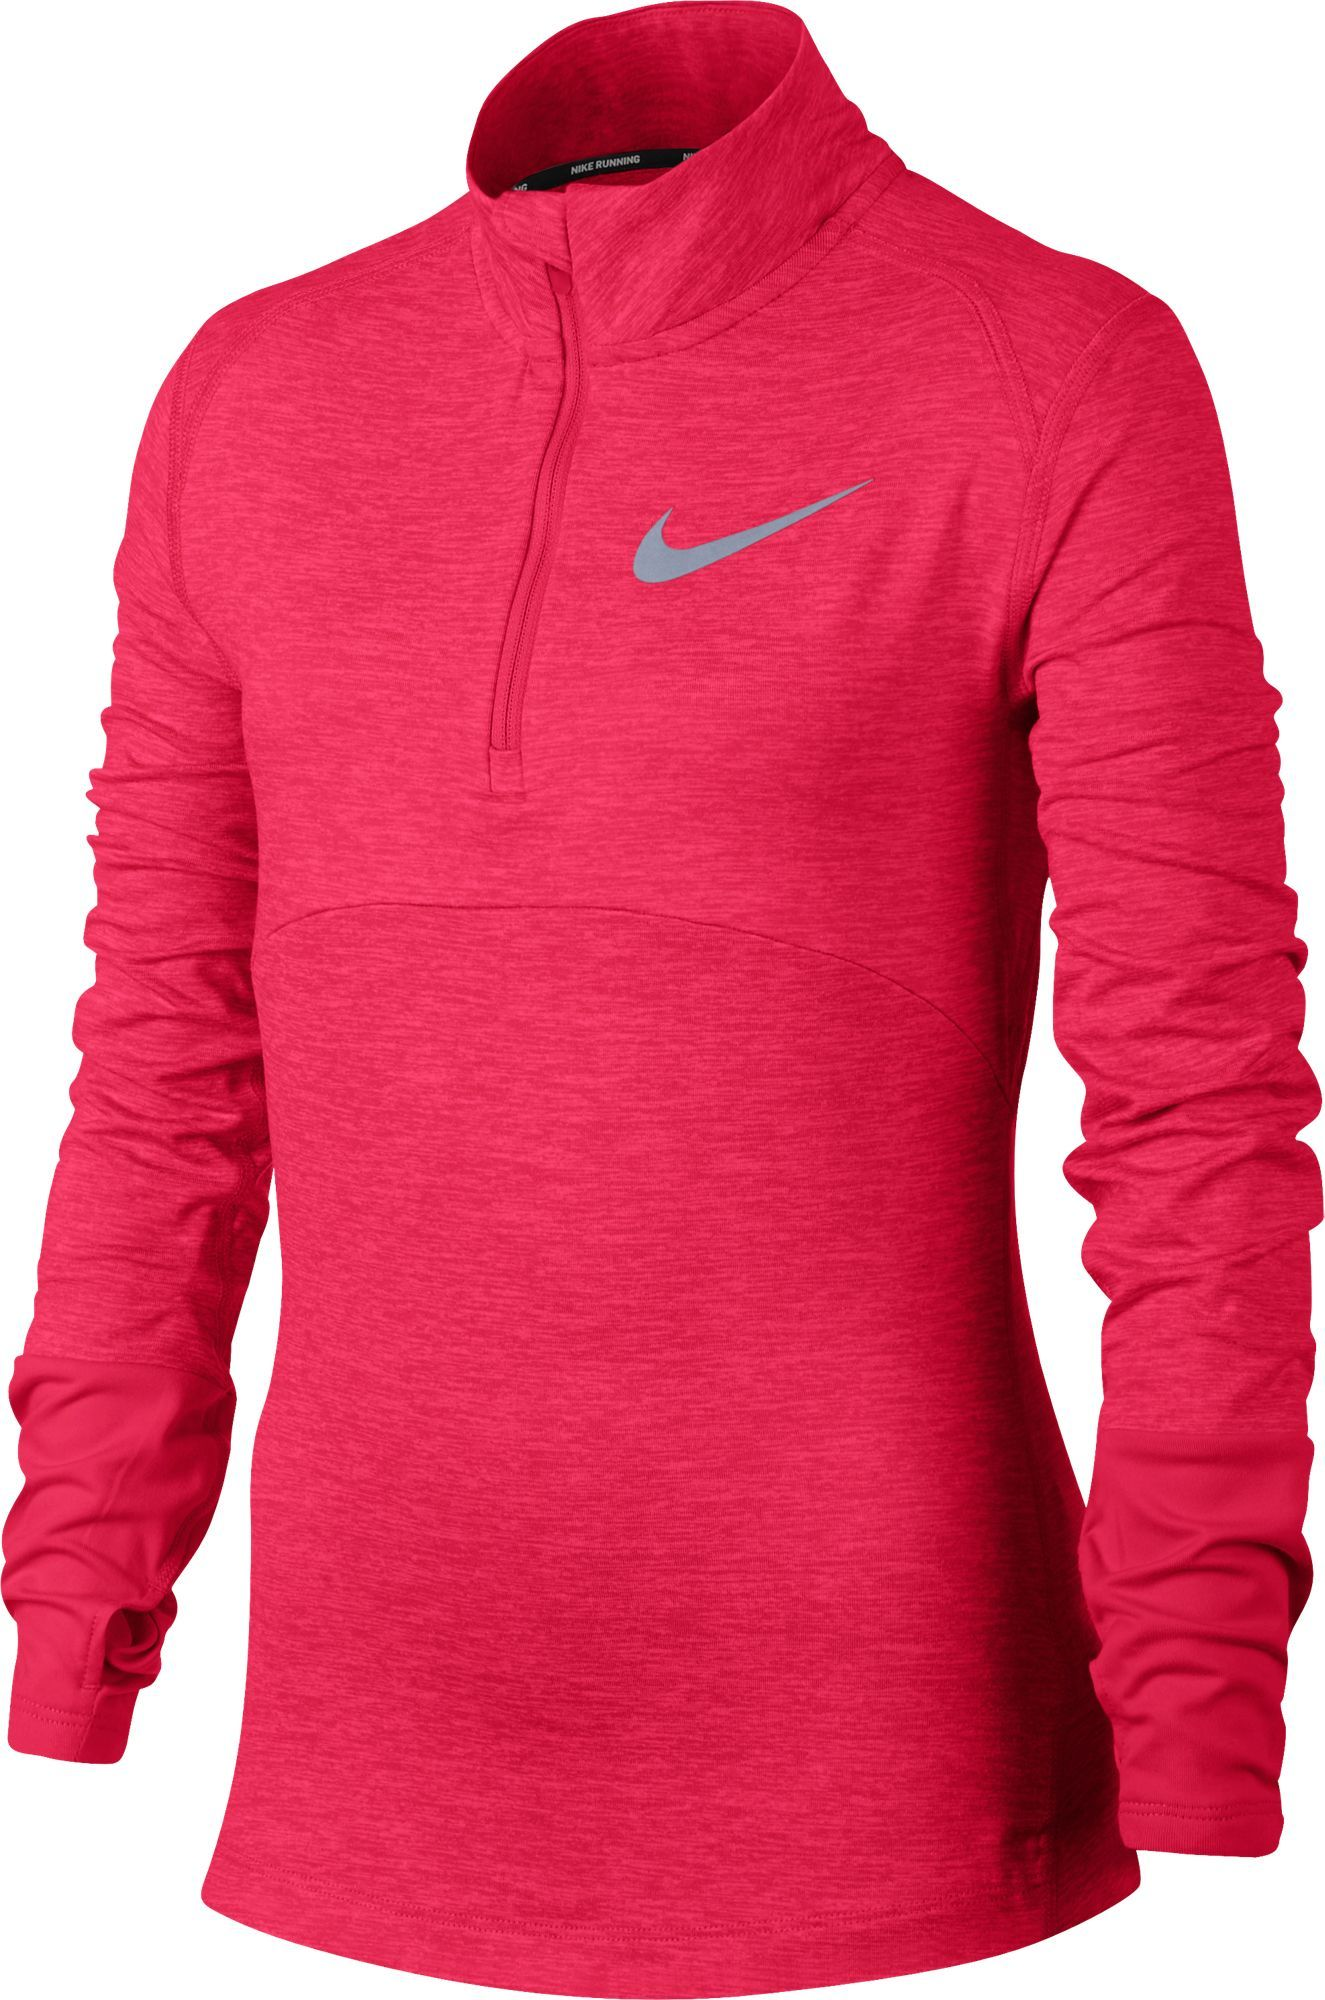 ff485cf1 Nike Girls' Dry Element Running Top (Racer Pink/Reflective Silver ...